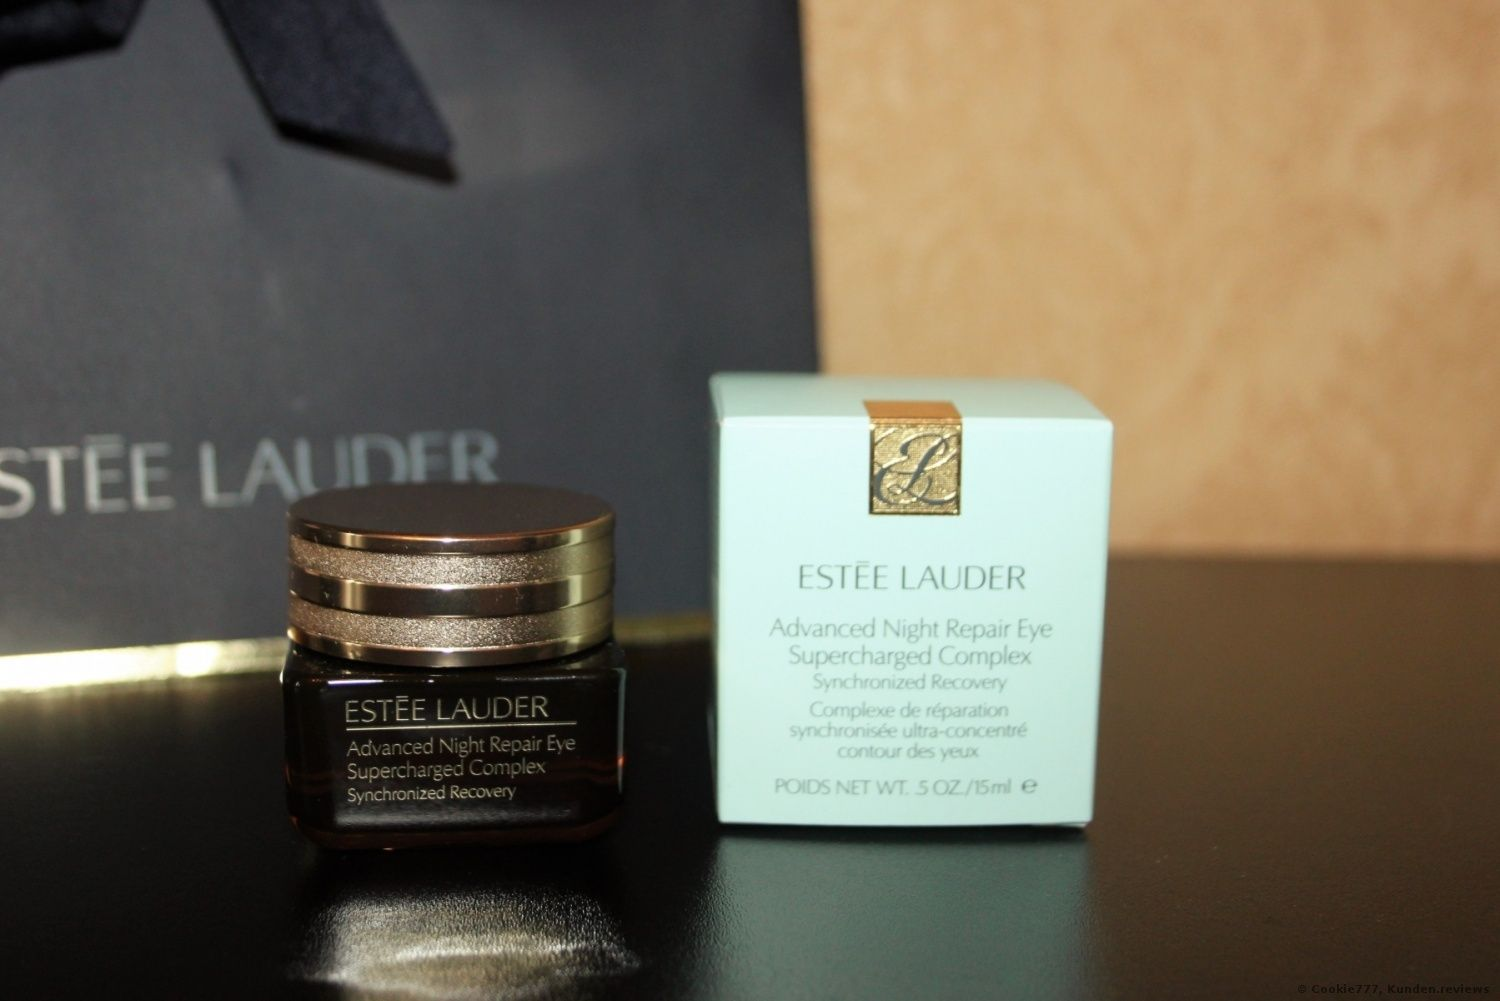 Estee Lauder Advanced Night Repair Eye Supercharged Complex Synchronized Recovery Augencreme Estee Lauder Advanced Night Repair Advanced Night Repair Eye Cream